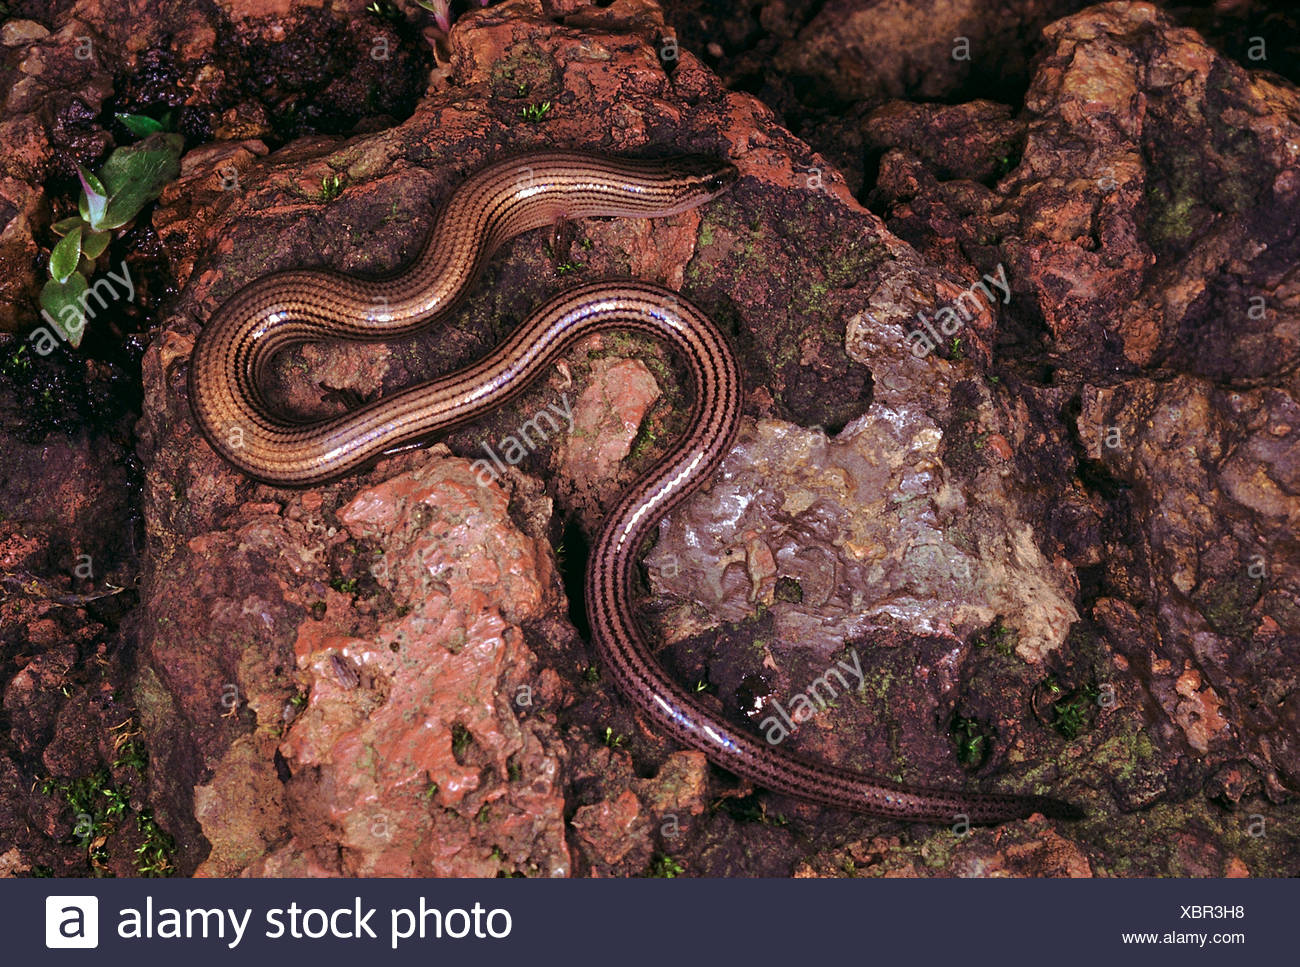 Riopa sp. Snake skink. An extremely elongated skink with reduced limbs. They are mainly found in the upper layers of the soil - Stock Image